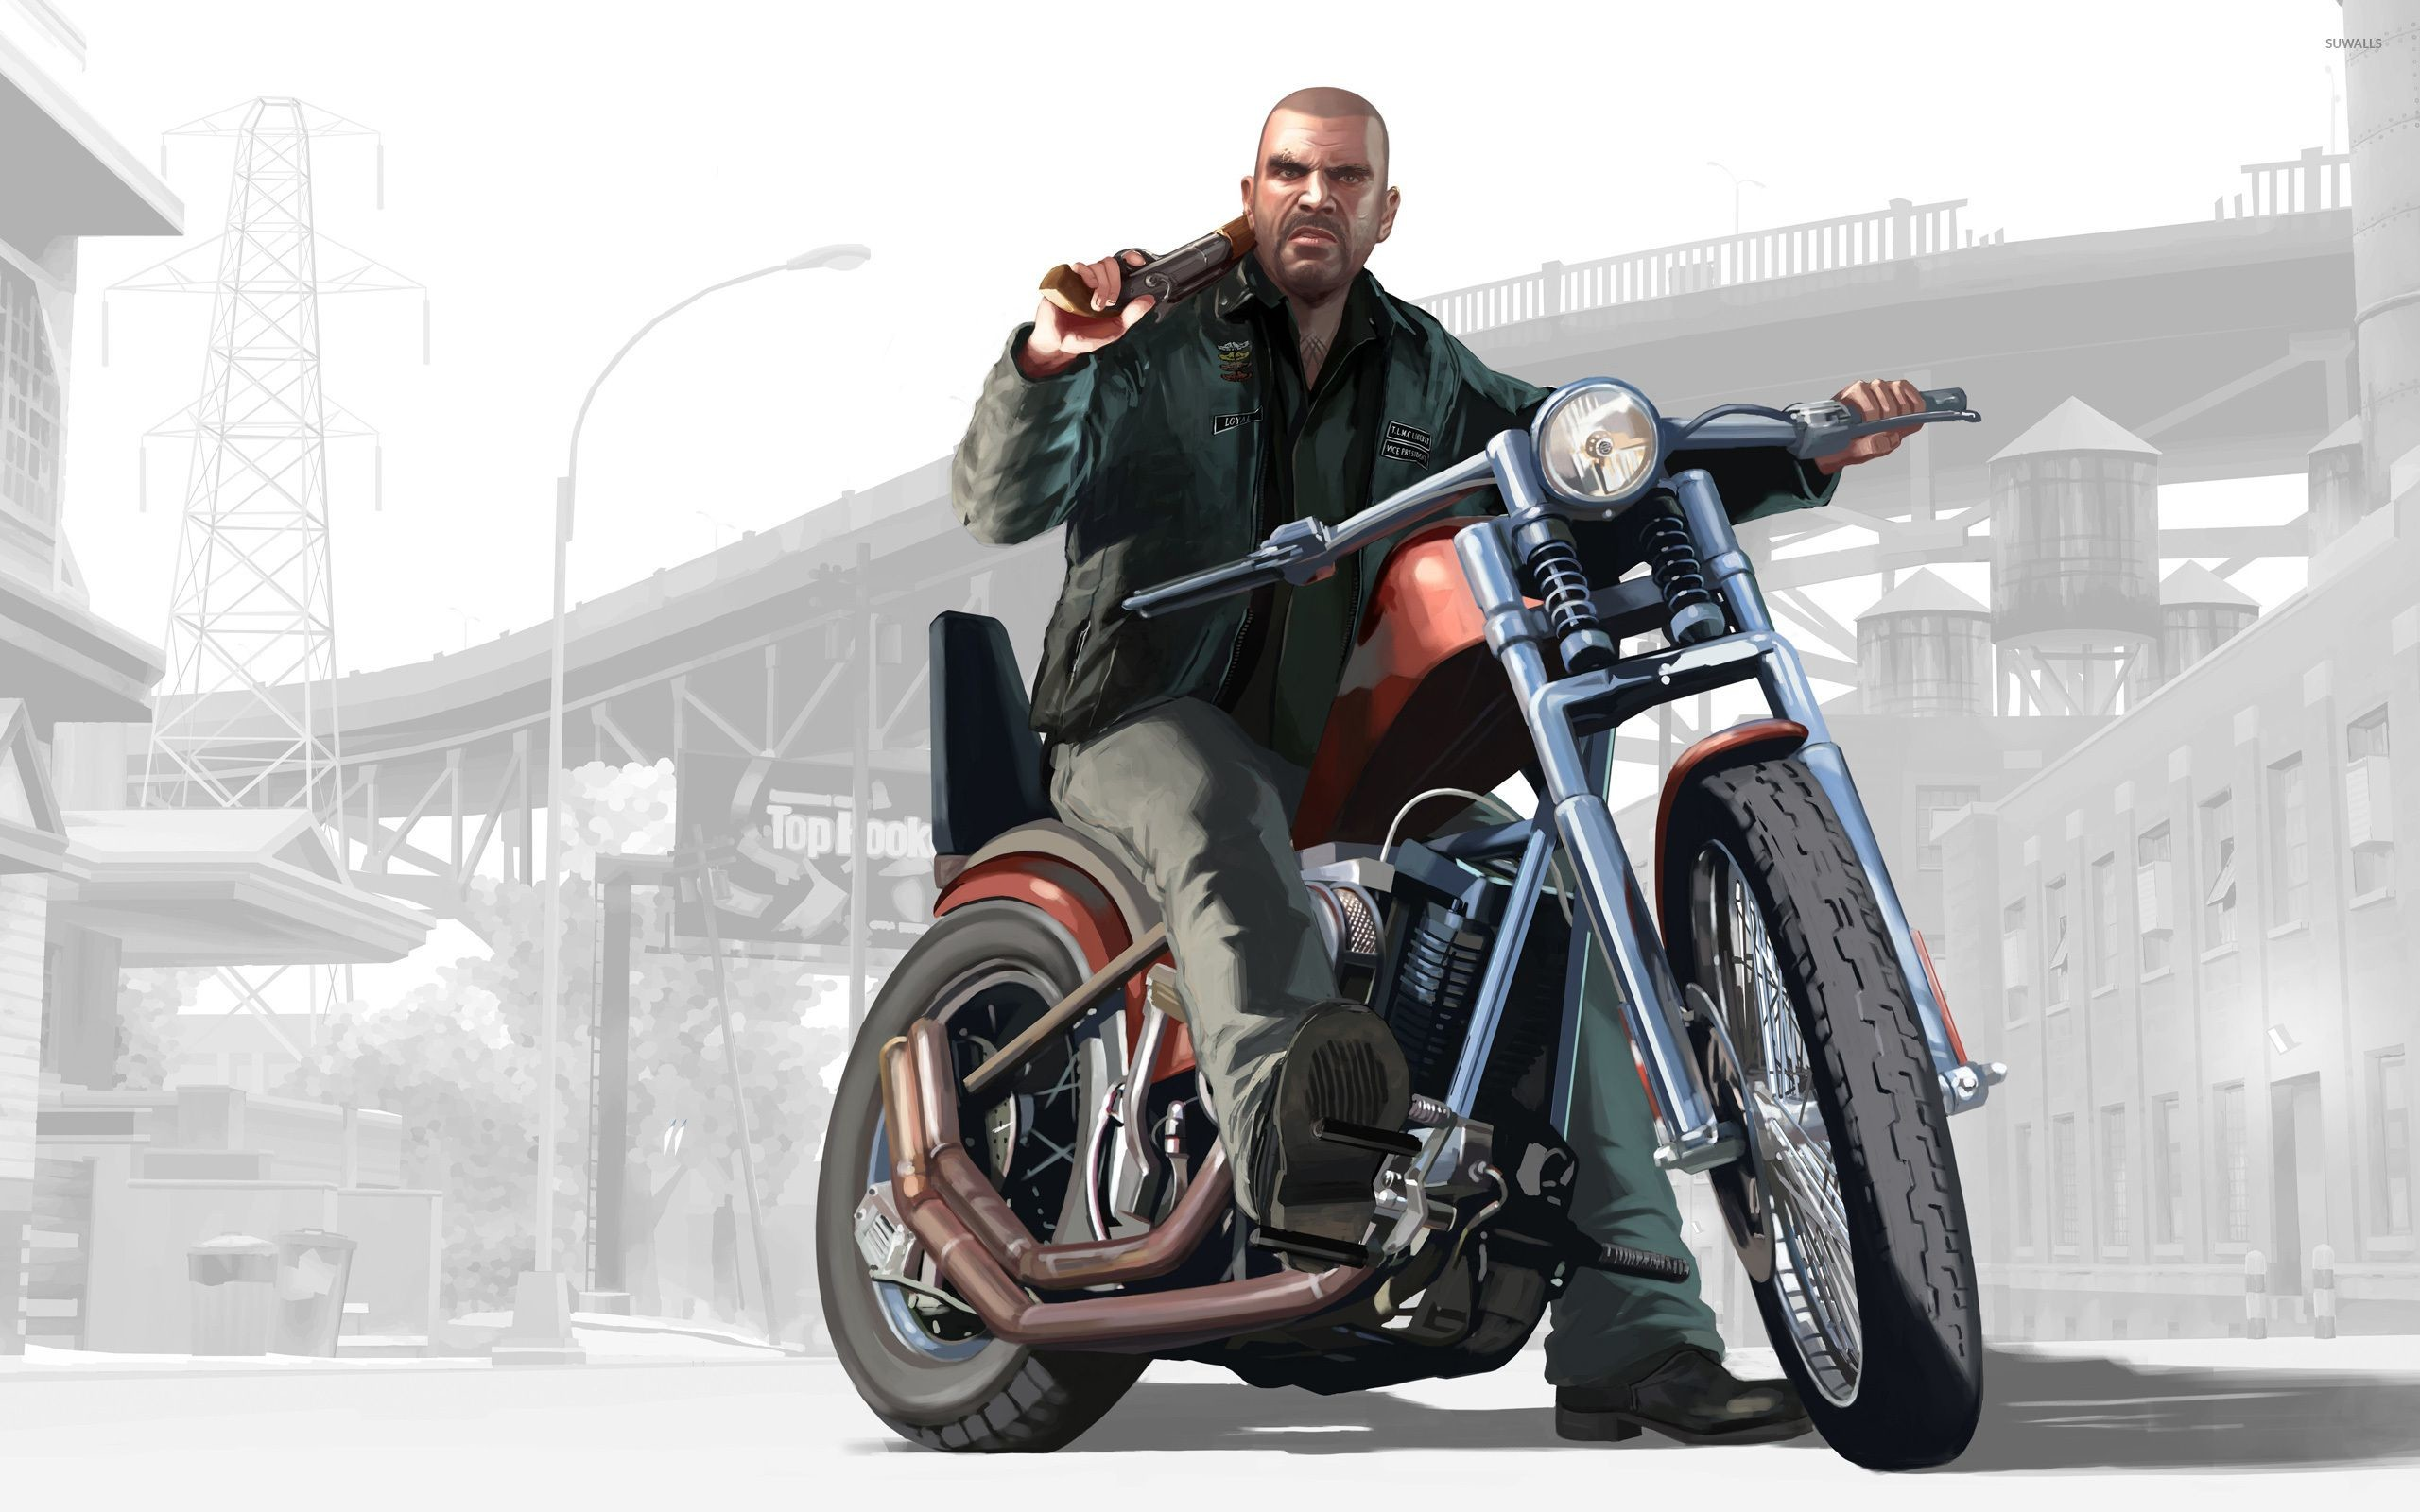 Res: 2560x1600, Download Wallpaper x Gta Grand theft auto Niko bellic